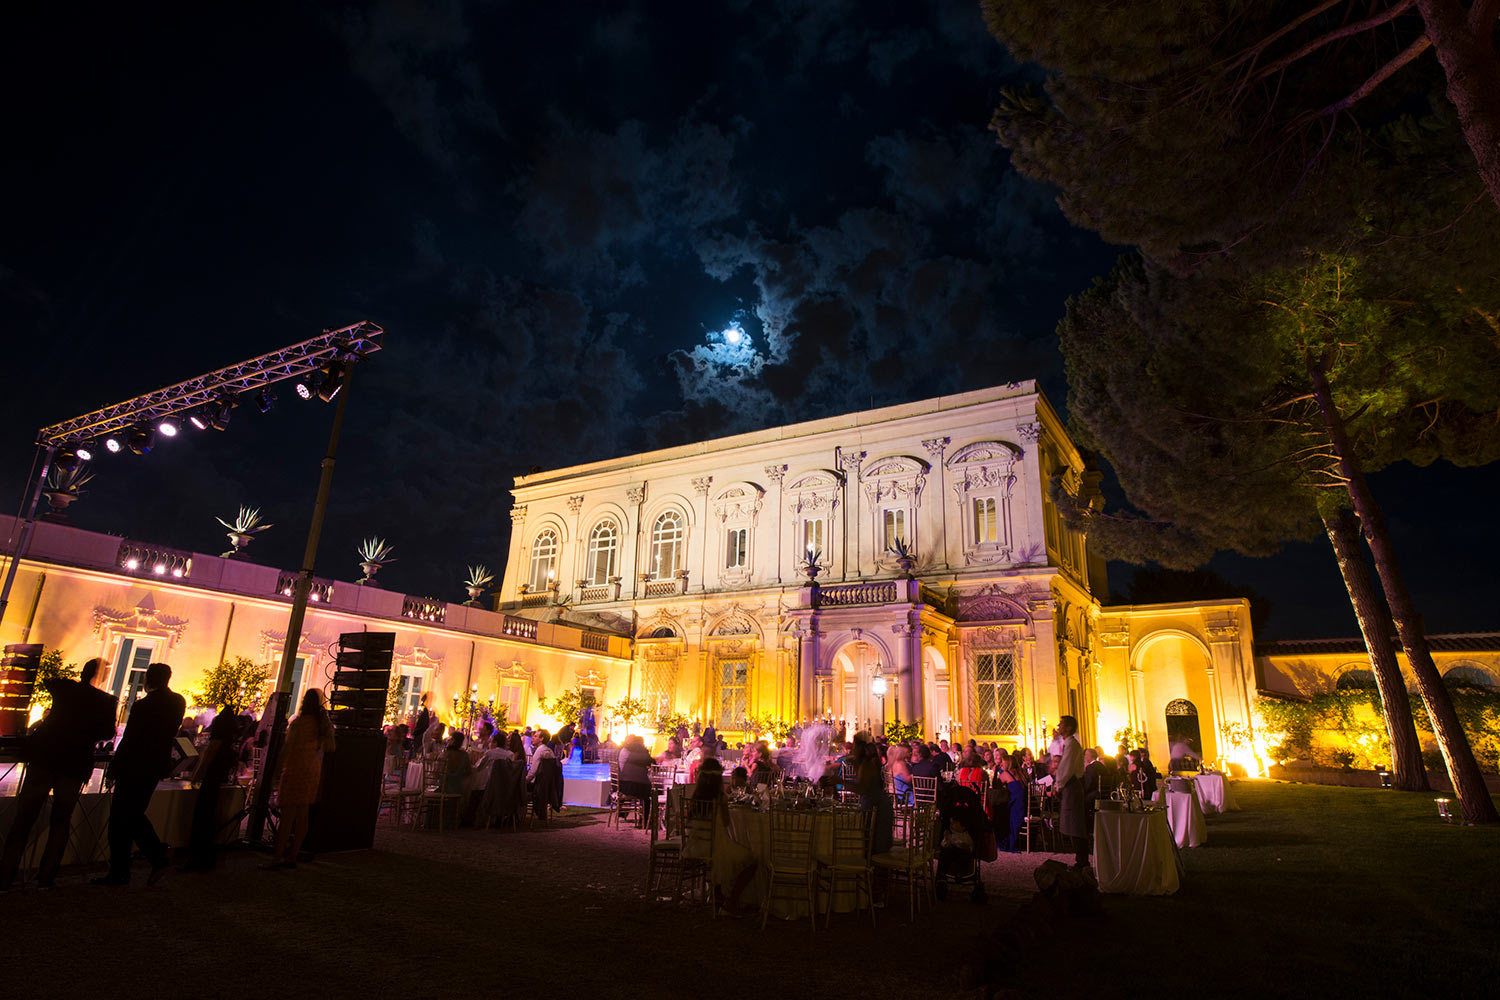 Villa Aurelia by night